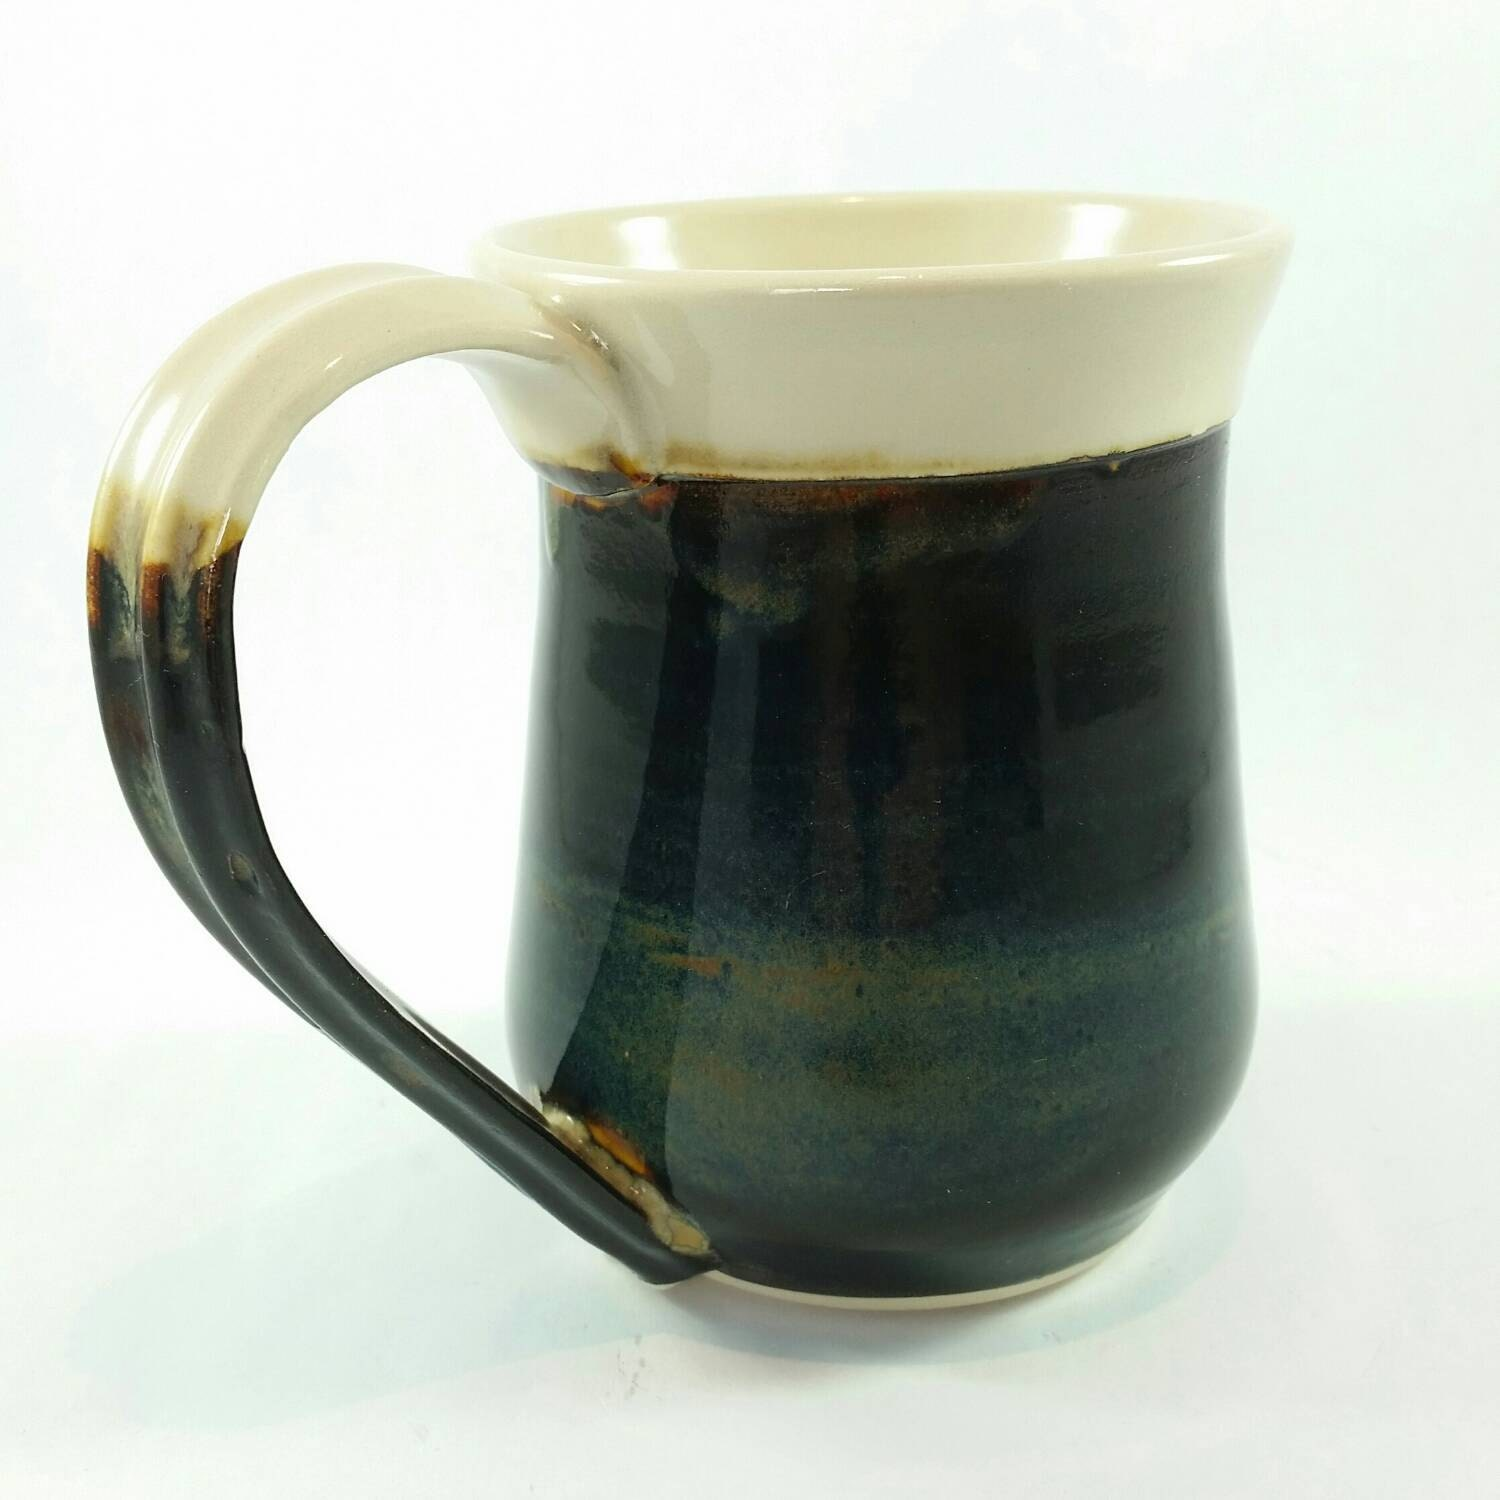 "VINTAGE 5.75""h BROWN & WHITE HANDLED POTTERY STONEWARE ... 